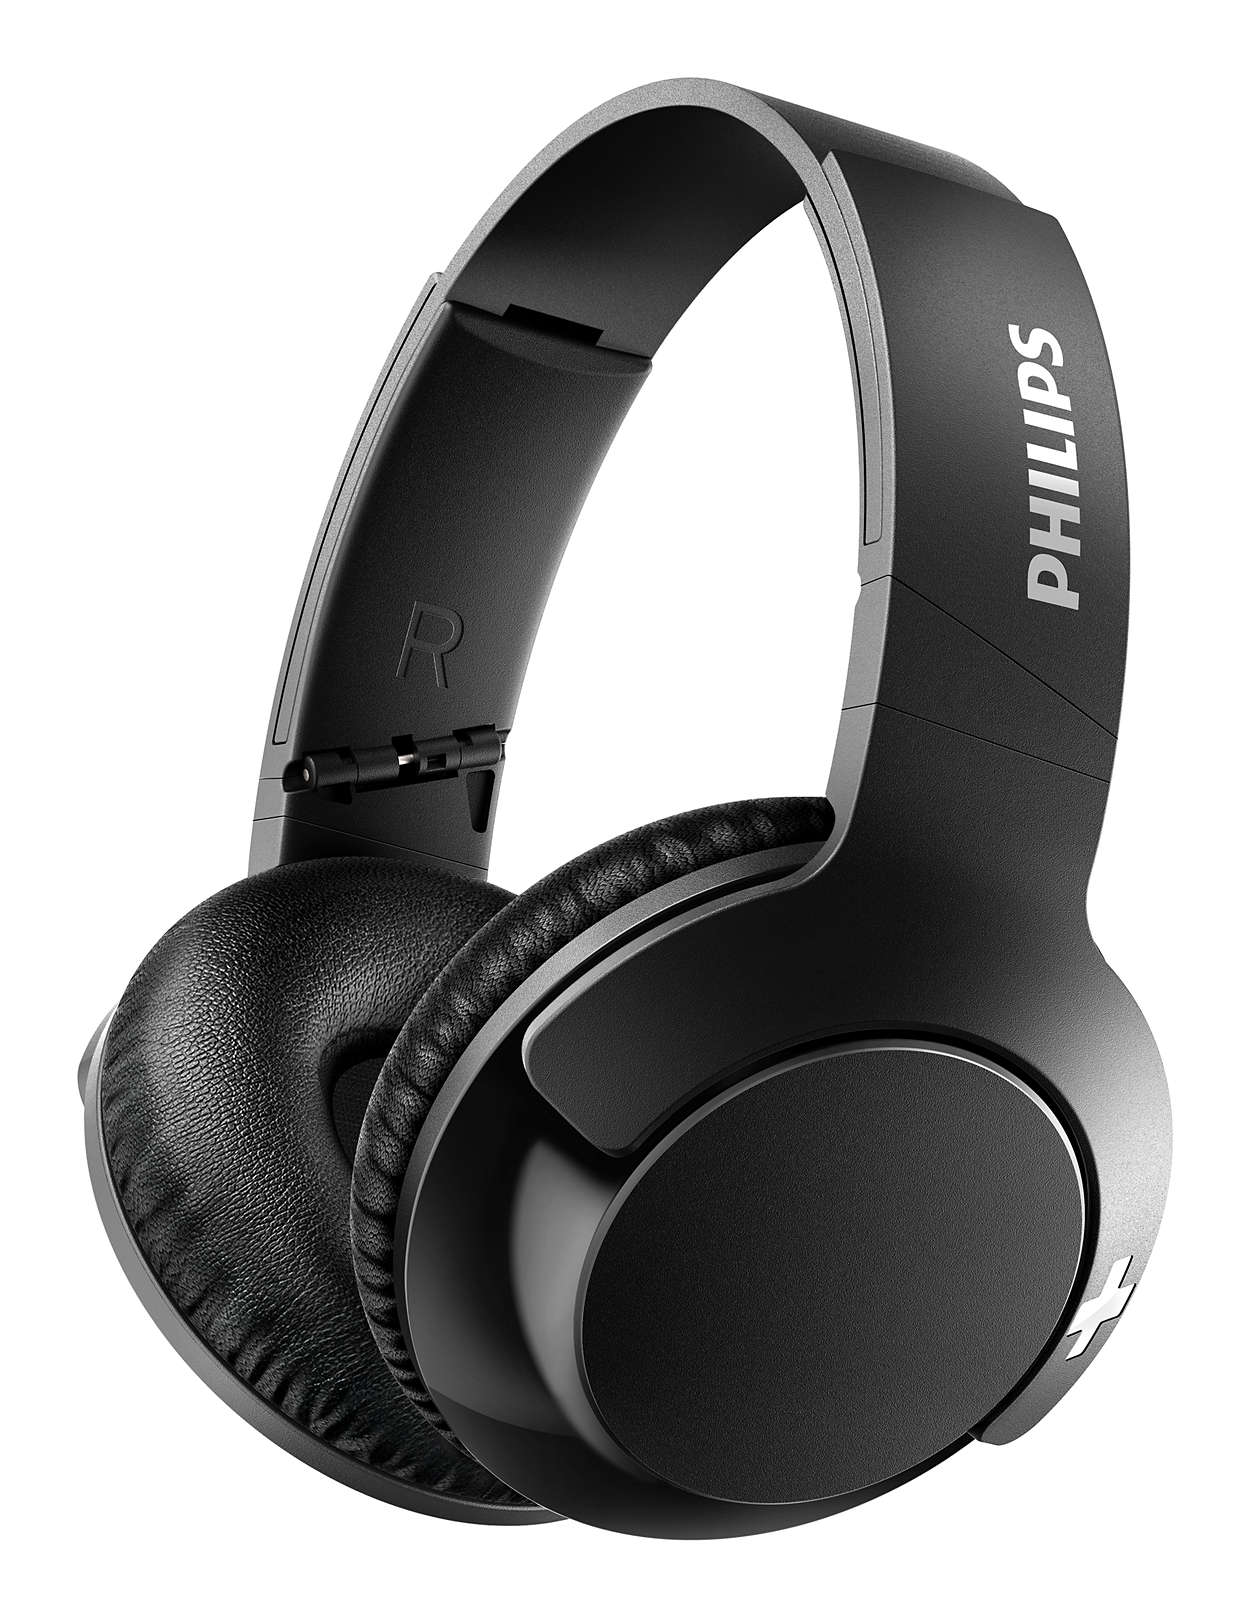 bass casque bluetooth shb3175bk 00 philips. Black Bedroom Furniture Sets. Home Design Ideas